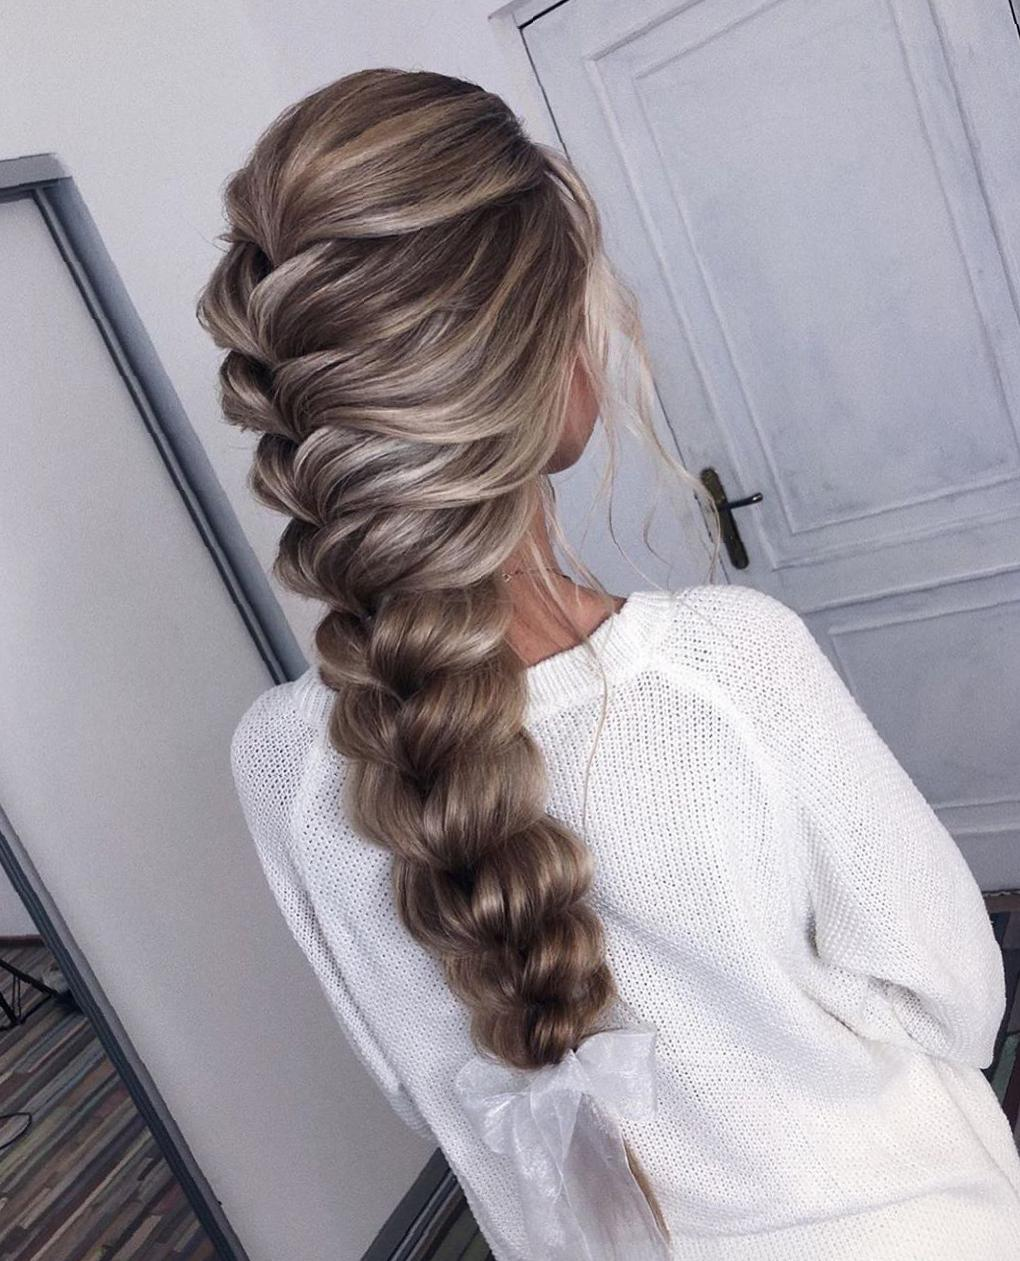 35 Amazing Braided Hairstyles for Long Hair for Summer braid hairstyle for long hair, braid hairstyles, long hairstyles, hairstyles for teens, hairstyles for girls